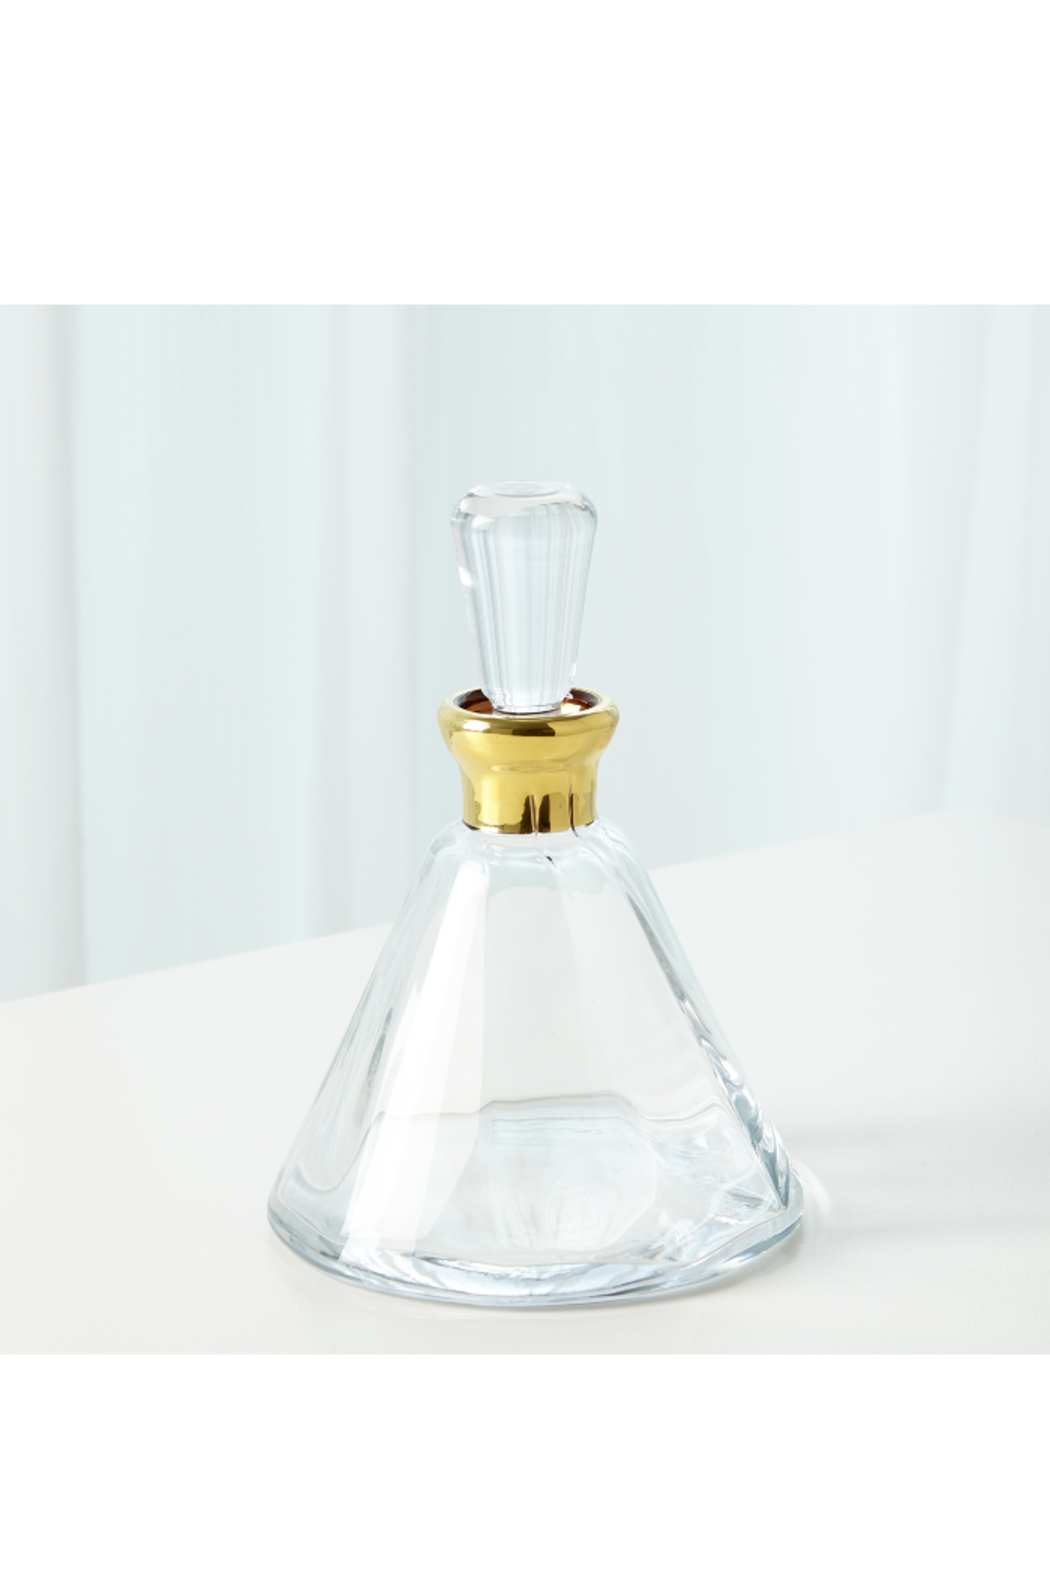 The Birds Nest GOLD CONE DECANTER - Main Image